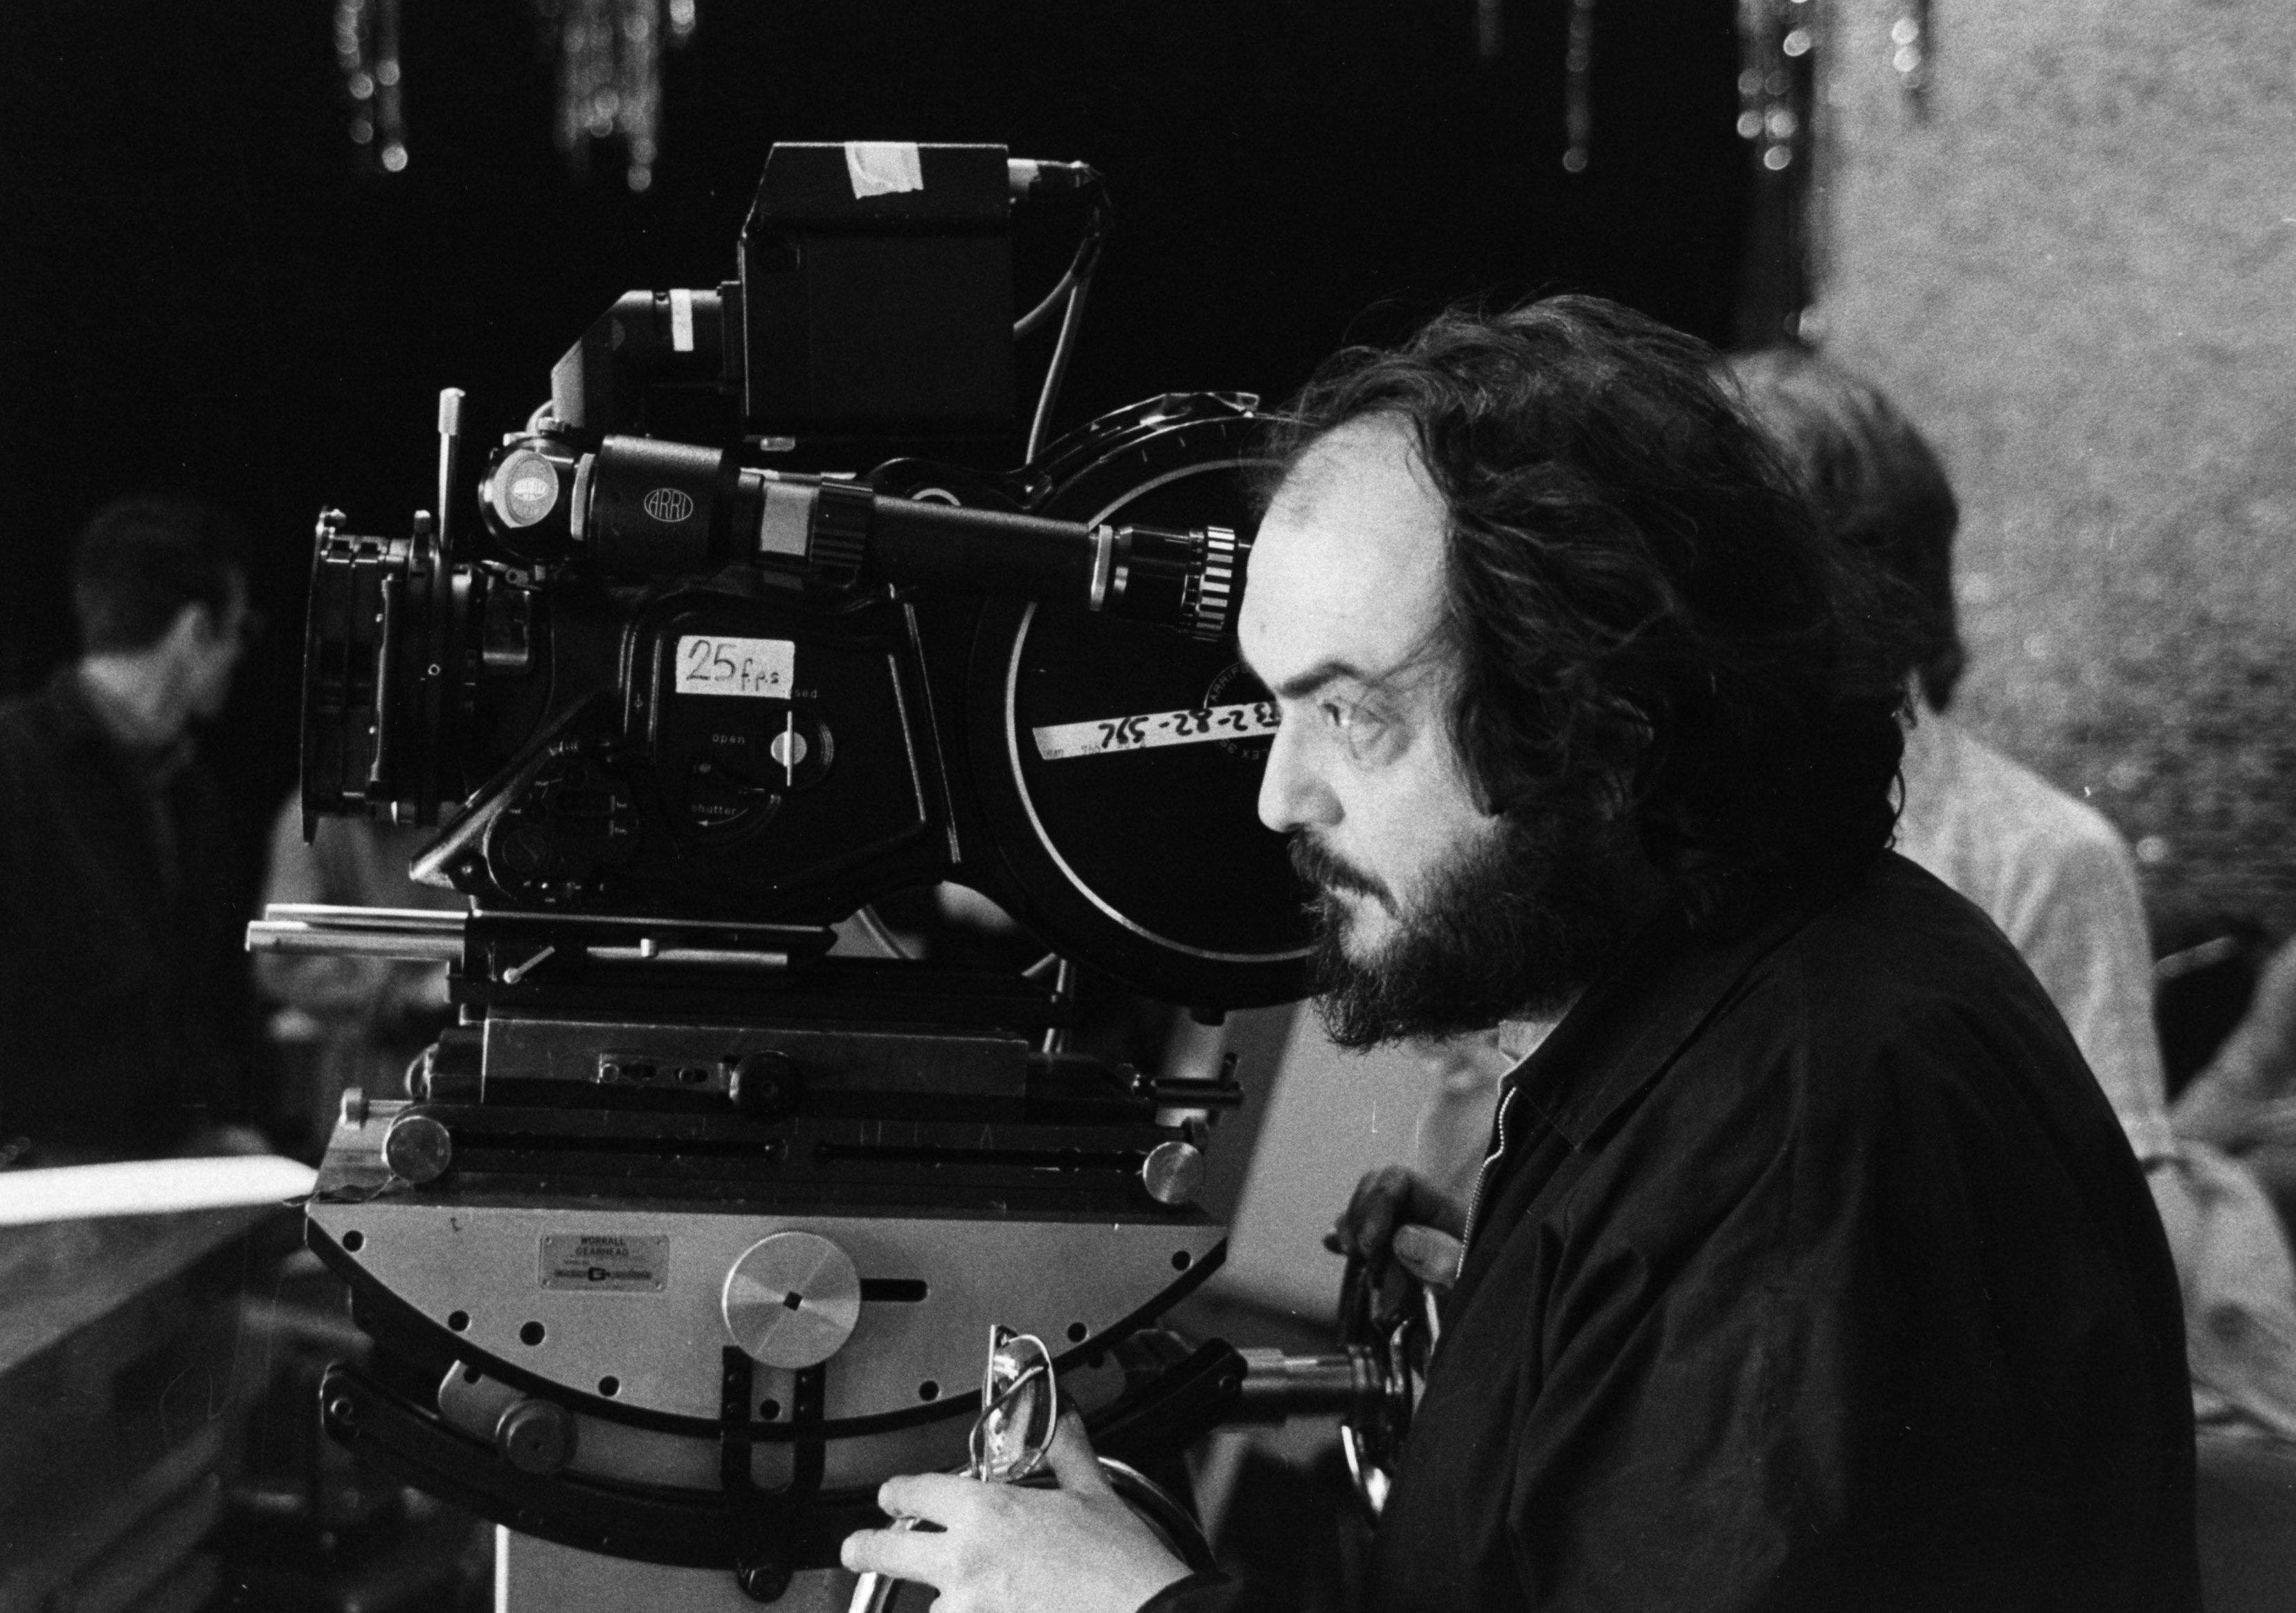 True Detective director Cary Fukunaga is trying to make the Stanley Kubrick film he never got to